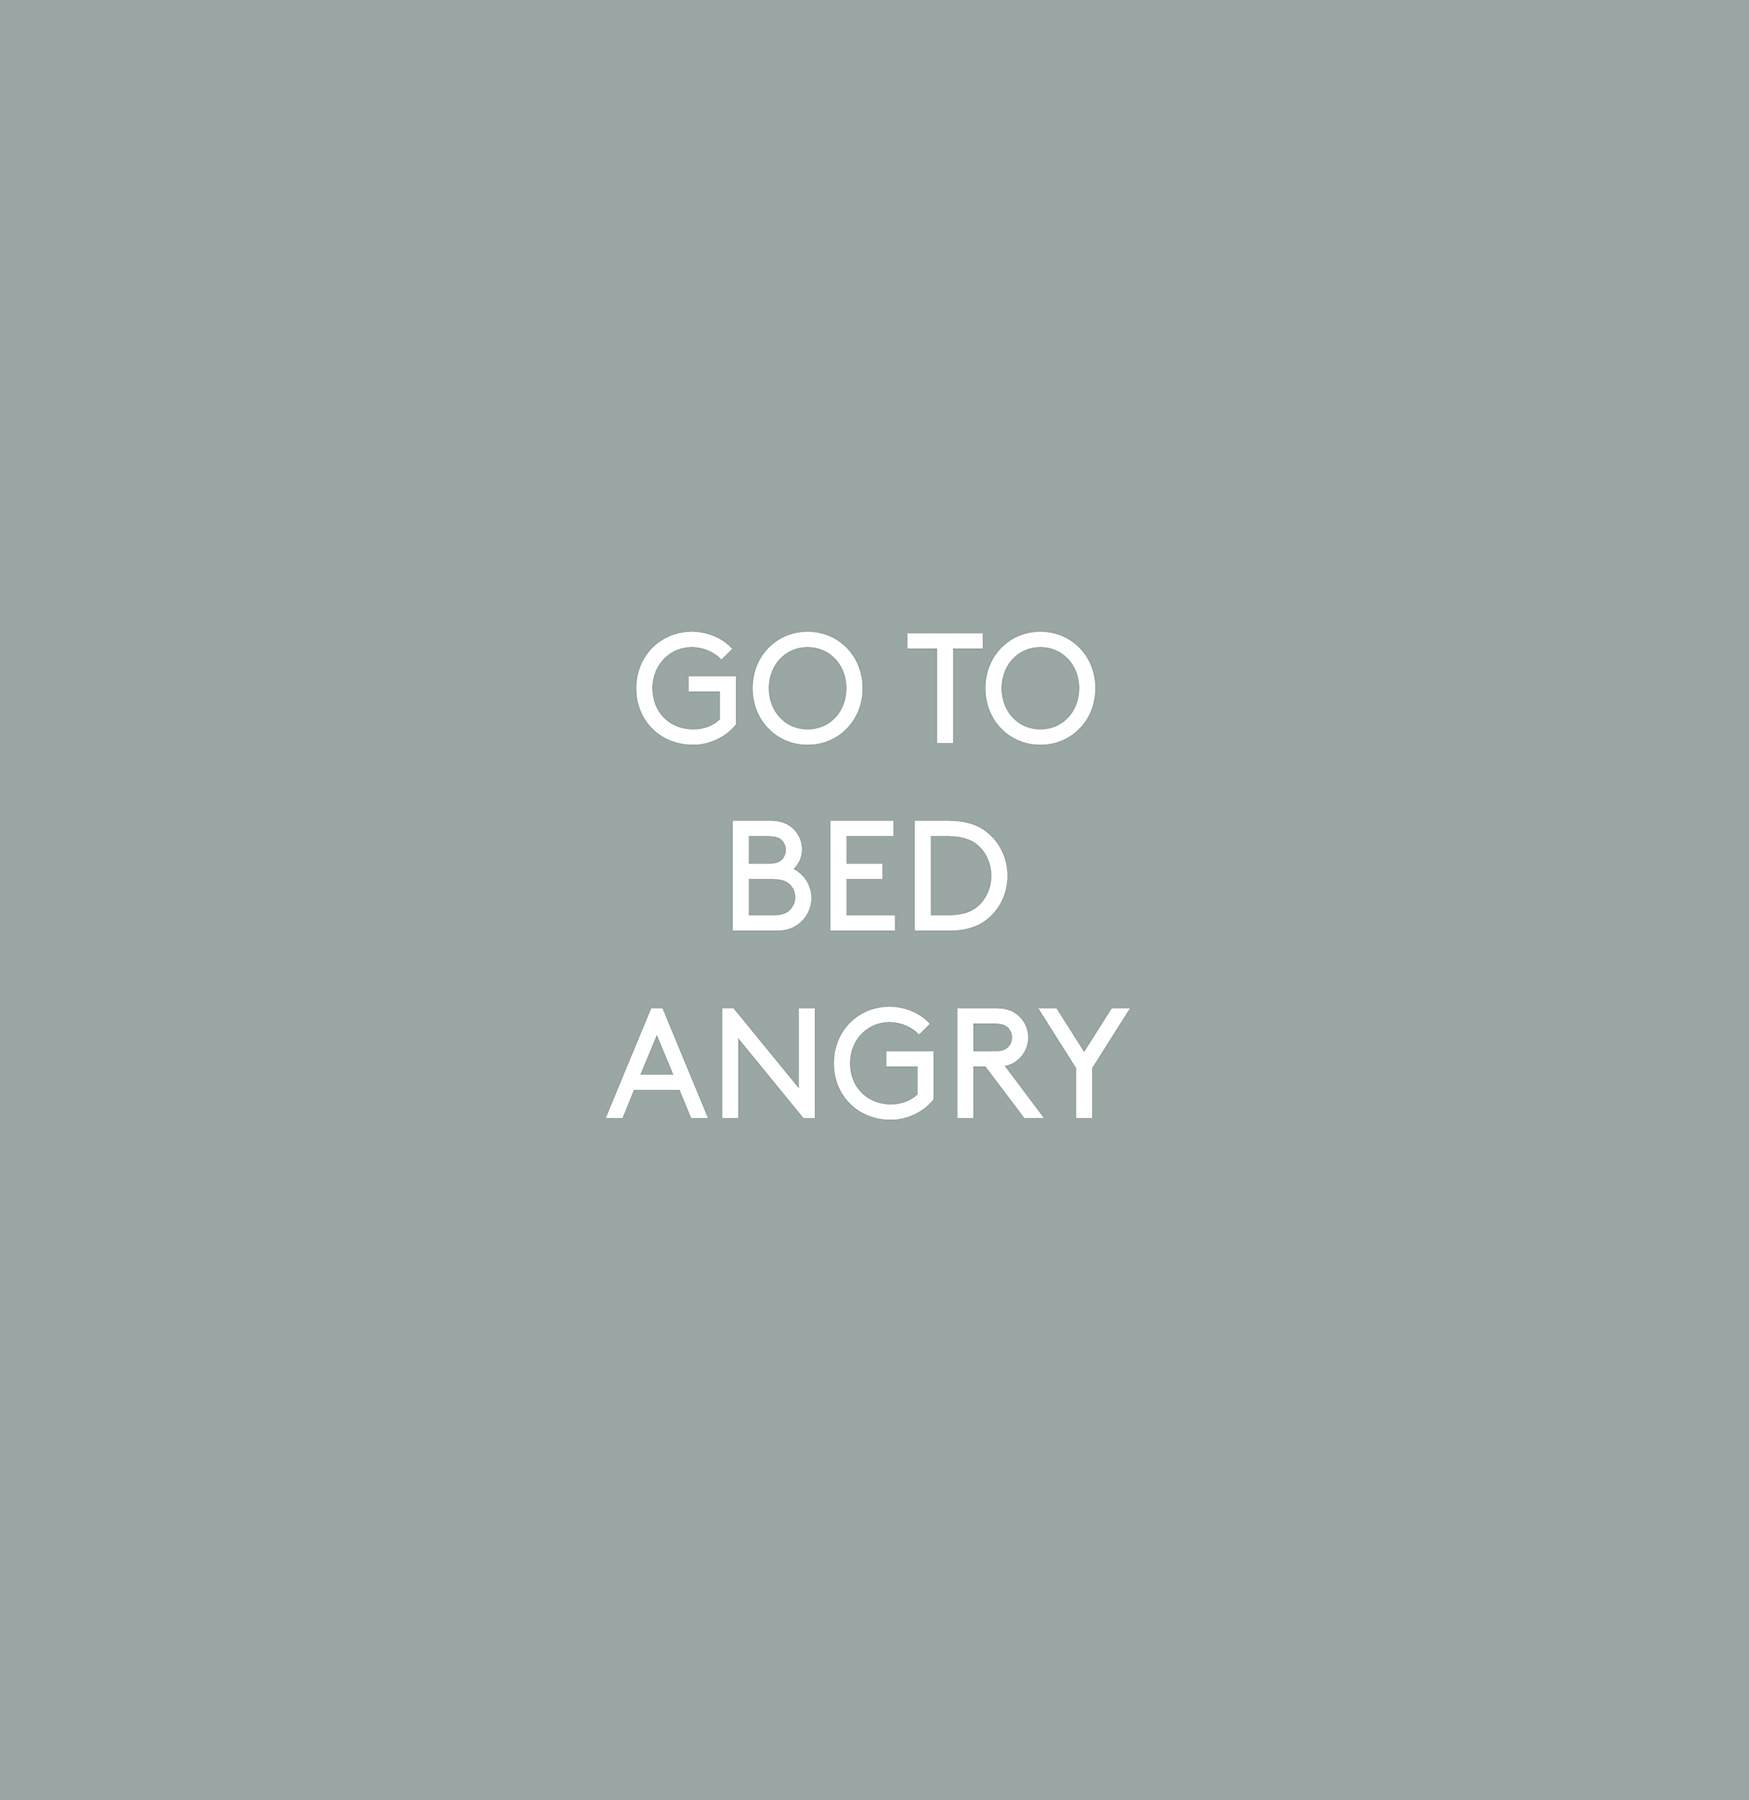 Go to Bed Angry